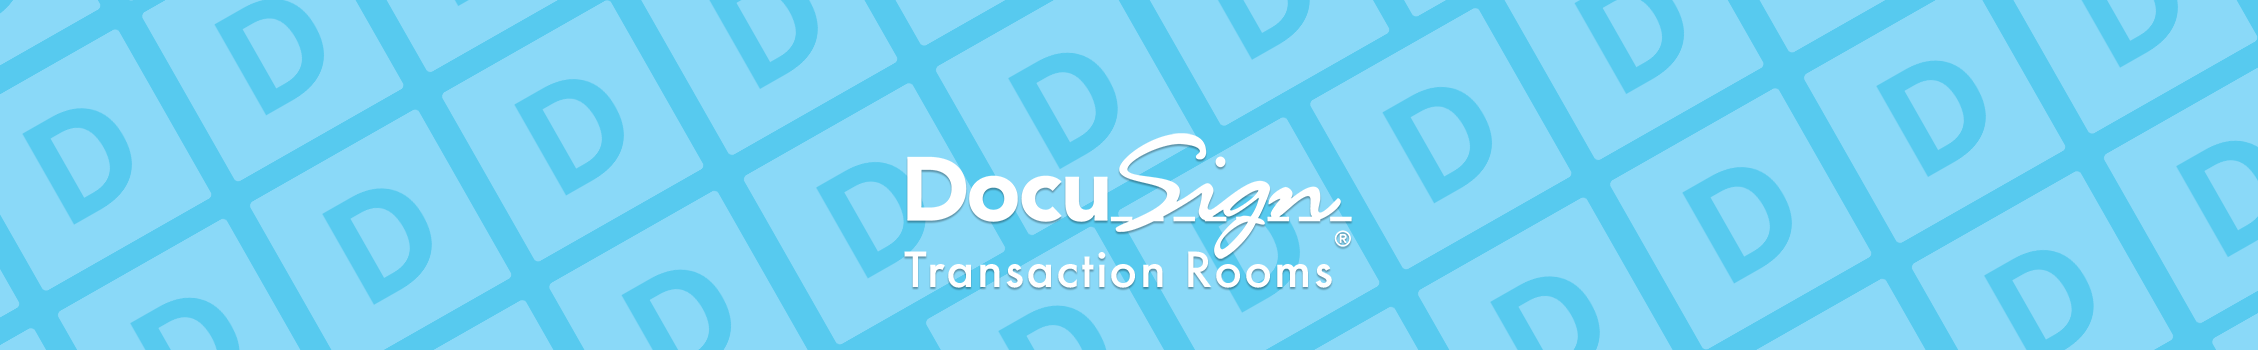 Docusign Blog Header.png